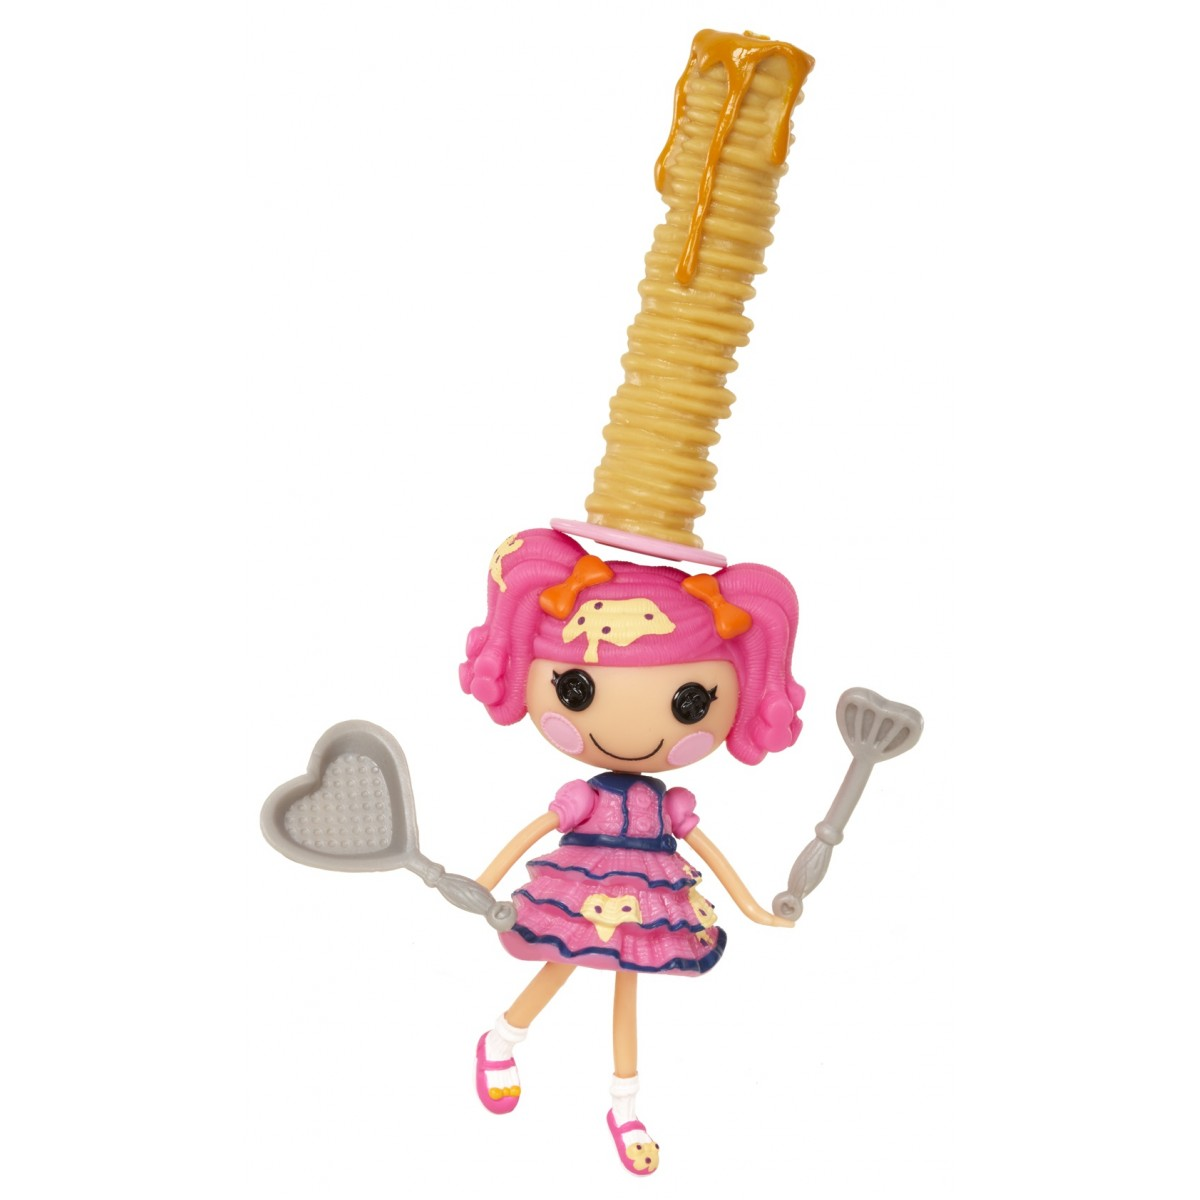 MINI BONECA LALALOOPSY MOMENTS IN TIME, BERRY JARS N JAM, DA BUBA TOYS  - Empório das Variedades